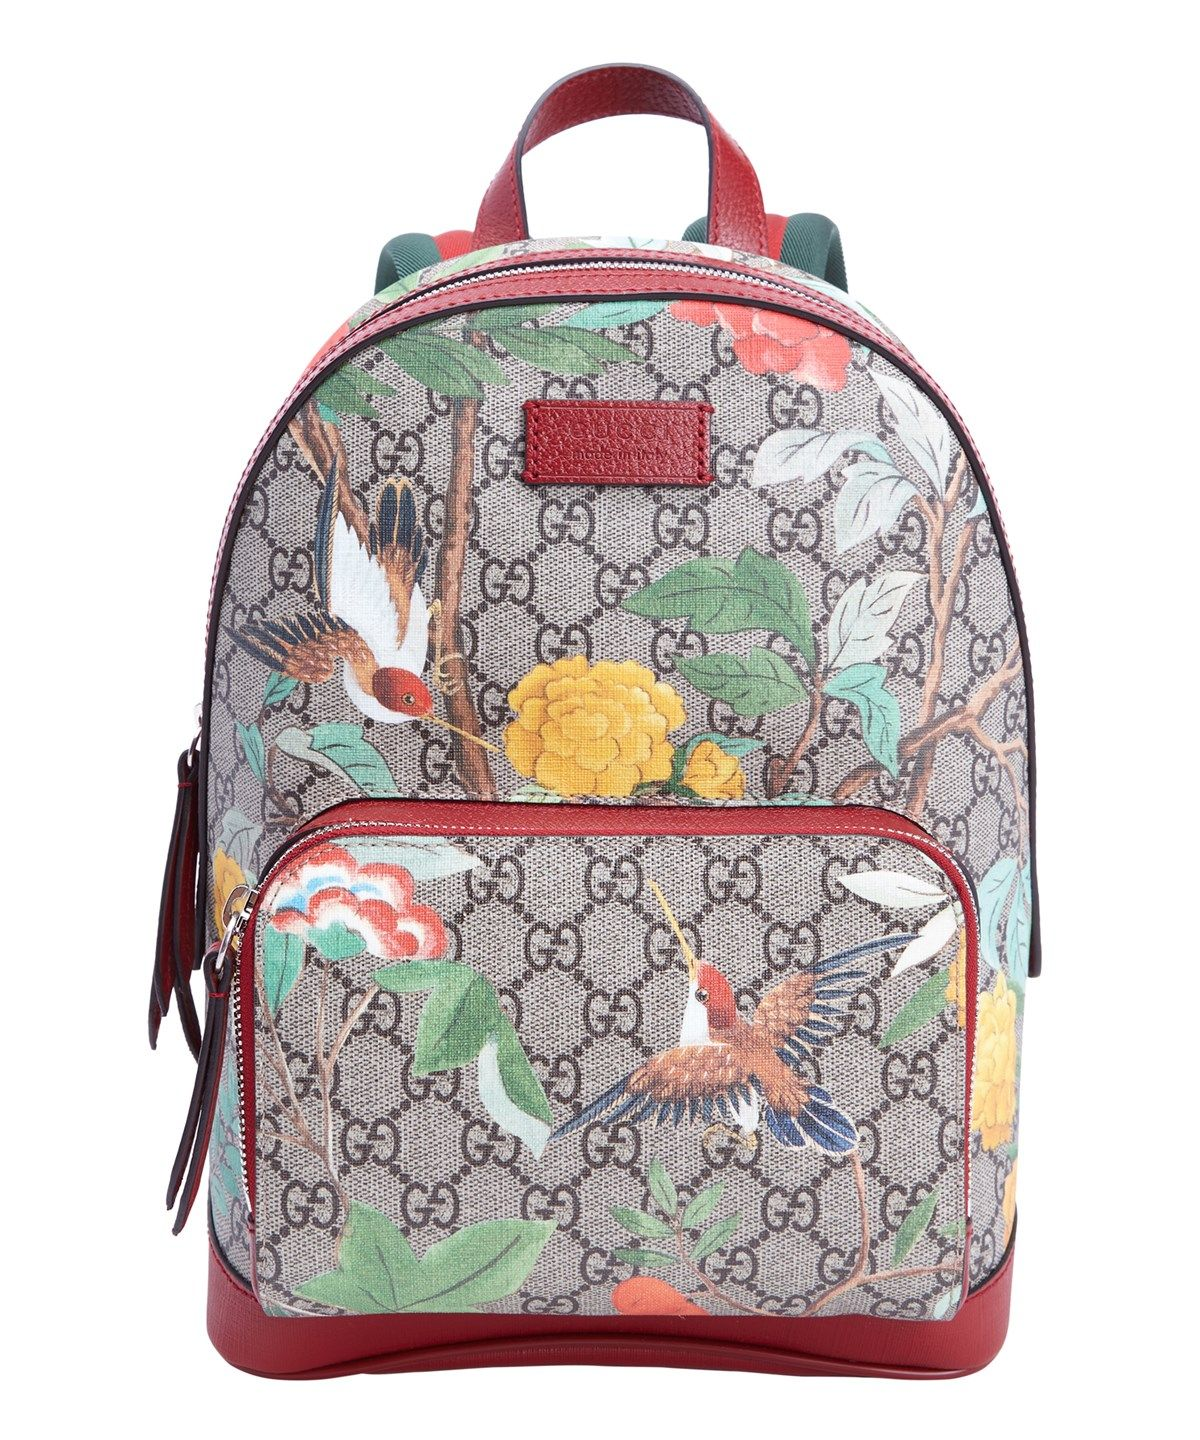 43235077b1d8 GUCCI Red Leather And Tian Print Gg Canvas Small Backpack .  gucci  bags   leather  lining  canvas  backpacks